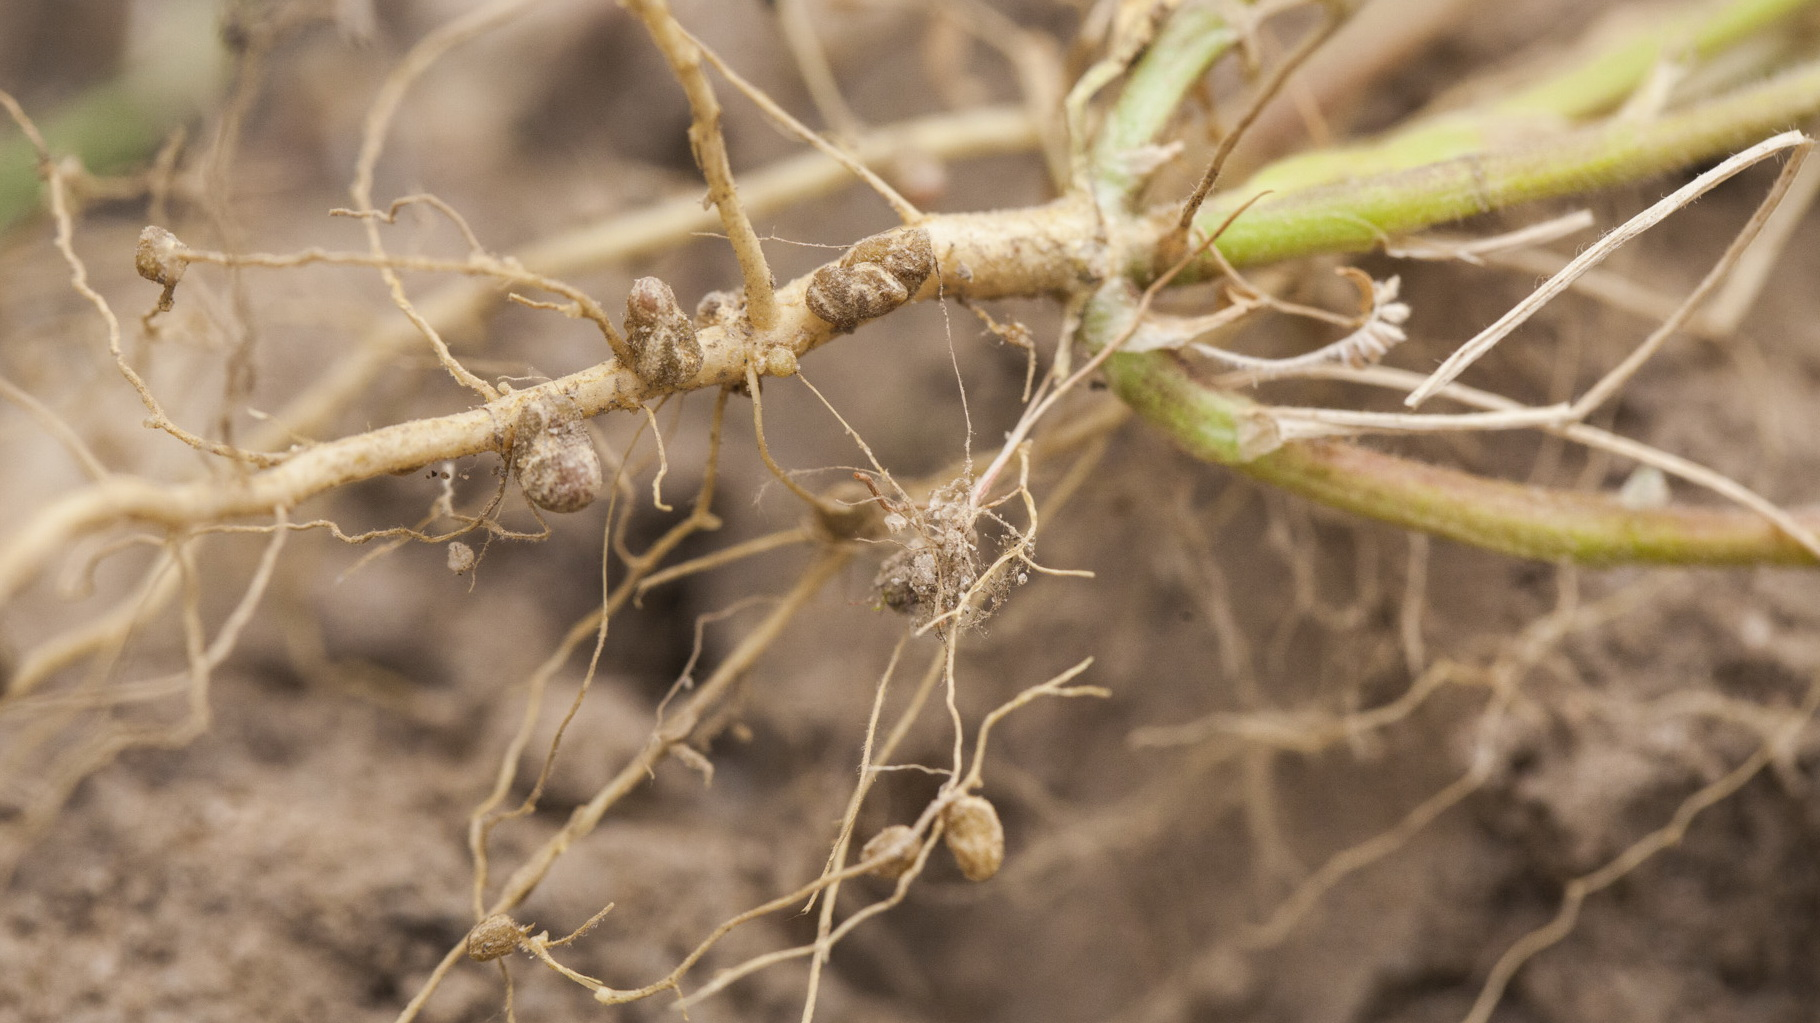 Nodules - small, rounded bumps - on the roots of a soybean plant. These nodules contain nitrogen-fixing bacteria that can produce nitrogen compounds from atmospheric nitrogen for the plant. Photo courtesy of user Terraprima on Wikimedia Commons.